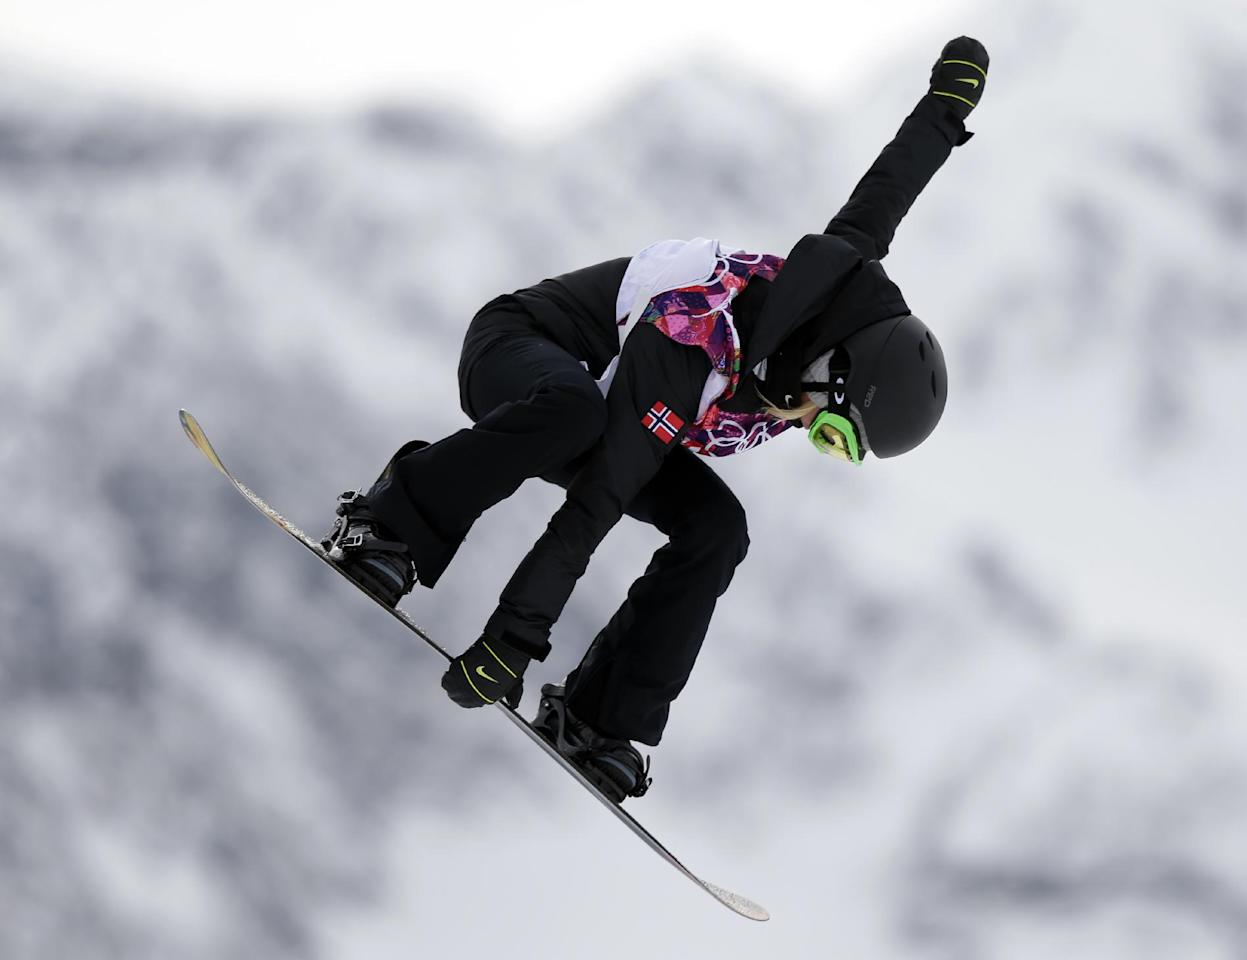 Norway's Silje Norendal takes a jump in her first run in the women's snowboard slopestyle final at the 2014 Winter Olympics, Sunday, Feb. 9, 2014, in Krasnaya Polyana, Russia. (AP Photo/Andy Wong)